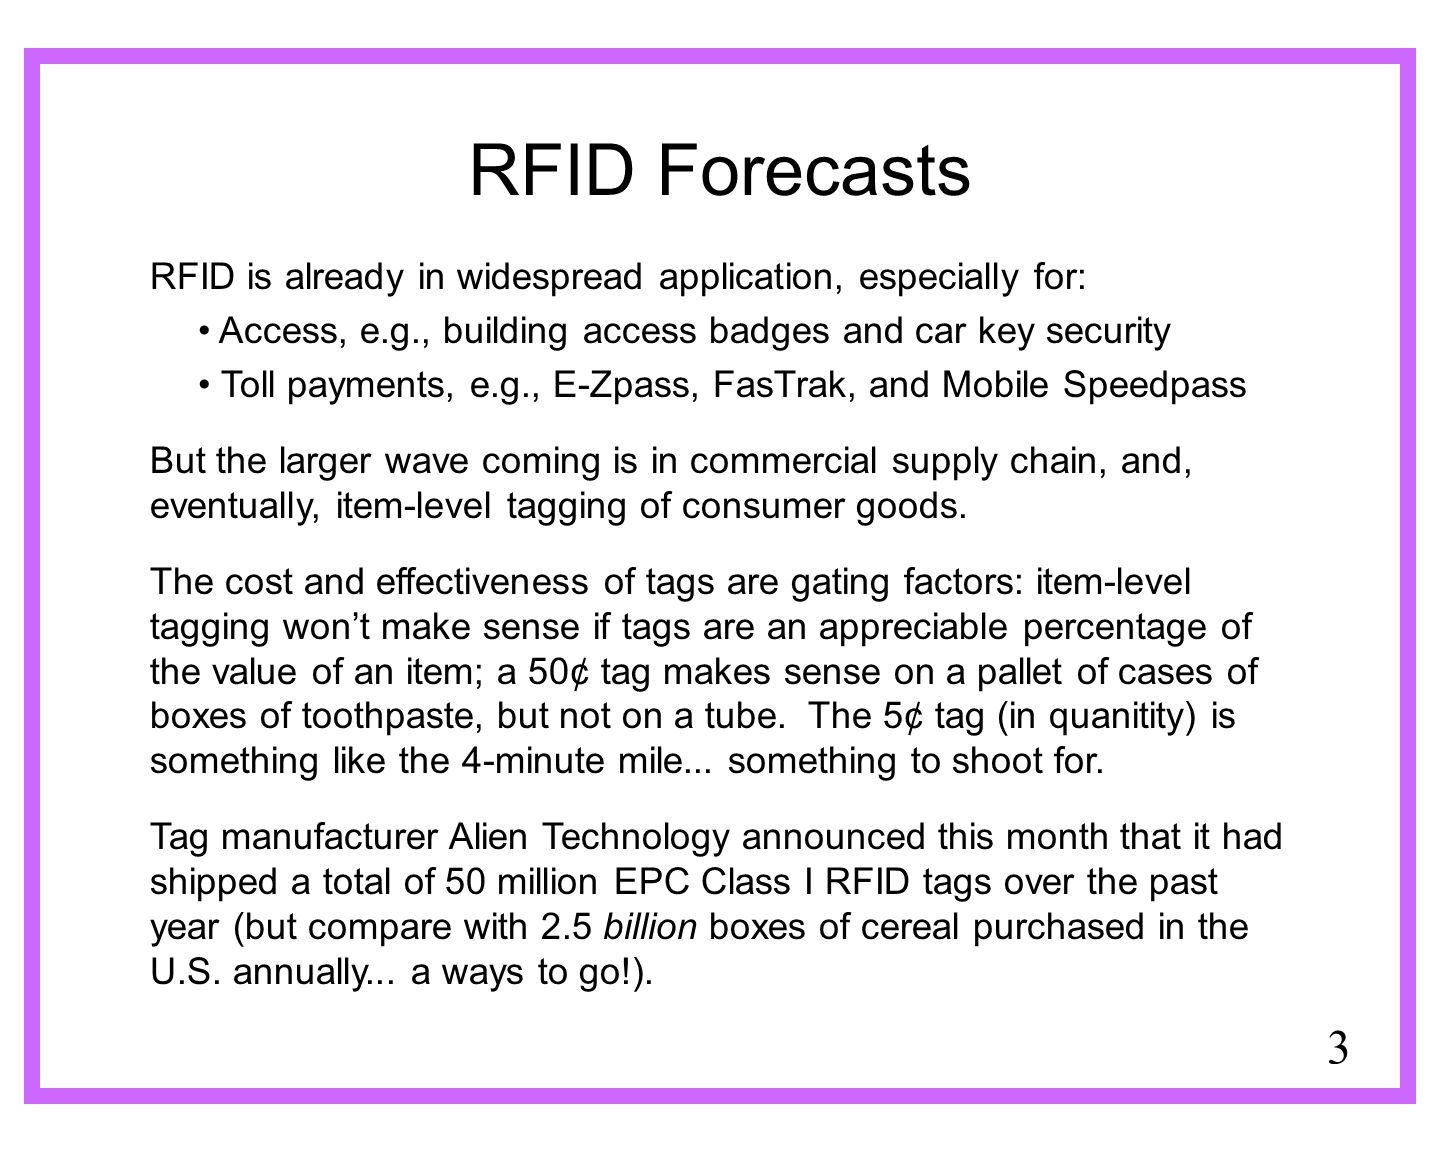 3 RFID Forecasts RFID is already in widespread application, especially for: Access, e.g., building access badges and car key security Toll payments, e.g., E-Zpass, FasTrak, and Mobile Speedpass But the larger wave coming is in commercial supply chain, and, eventually, item-level tagging of consumer goods.